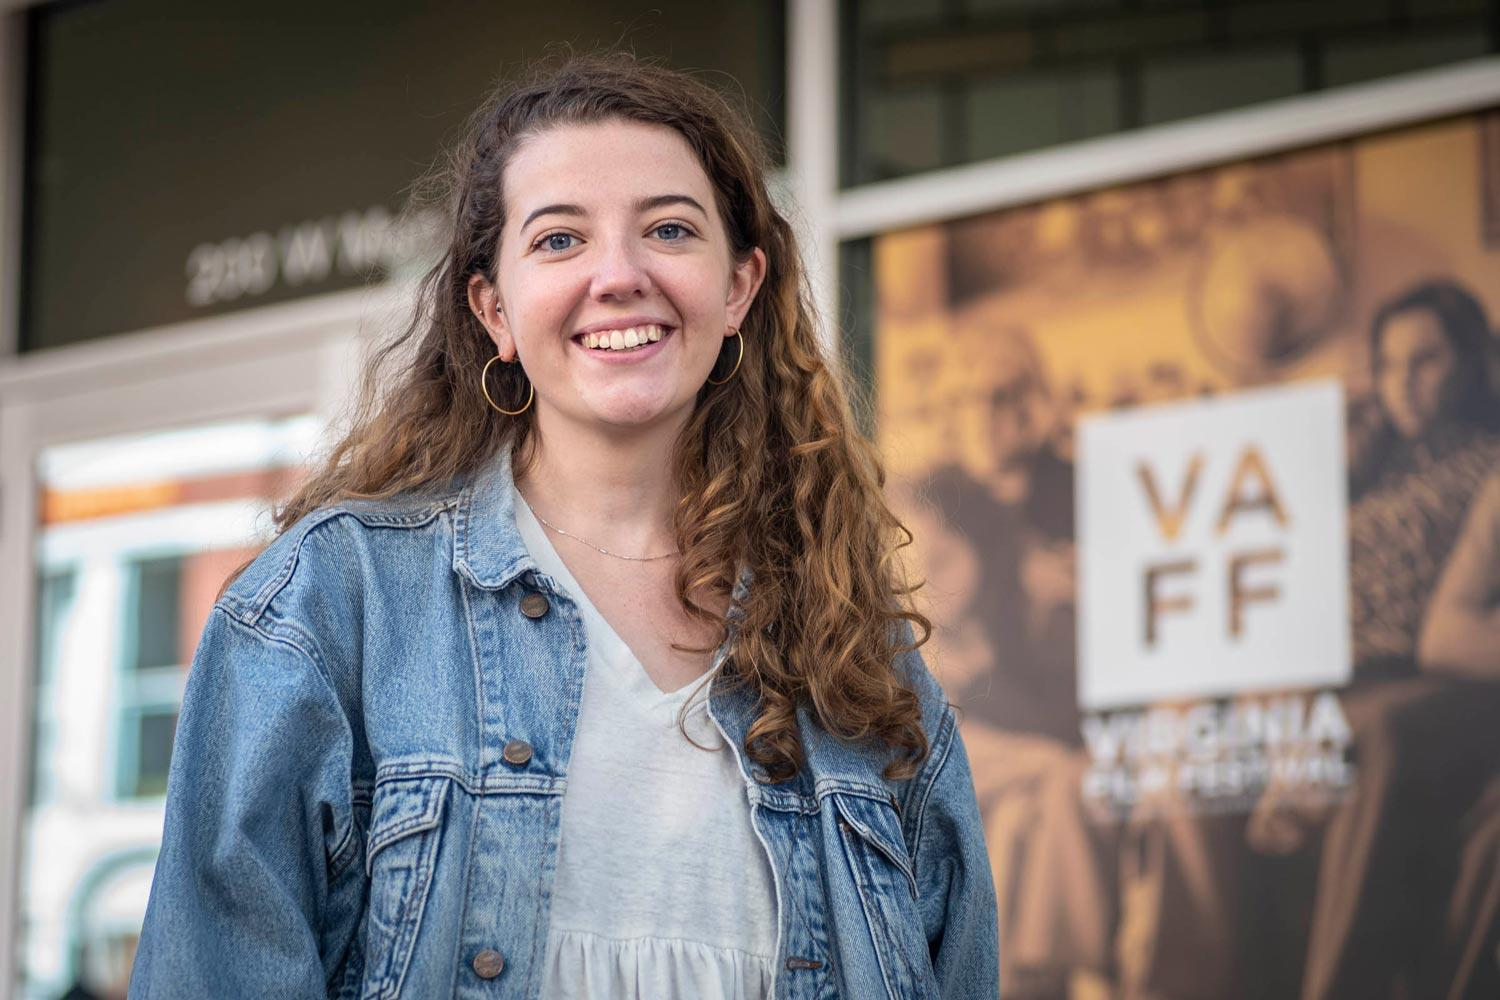 Sarah Ross has interned for the Virginia Film Festival for three out of her four years at UVA.